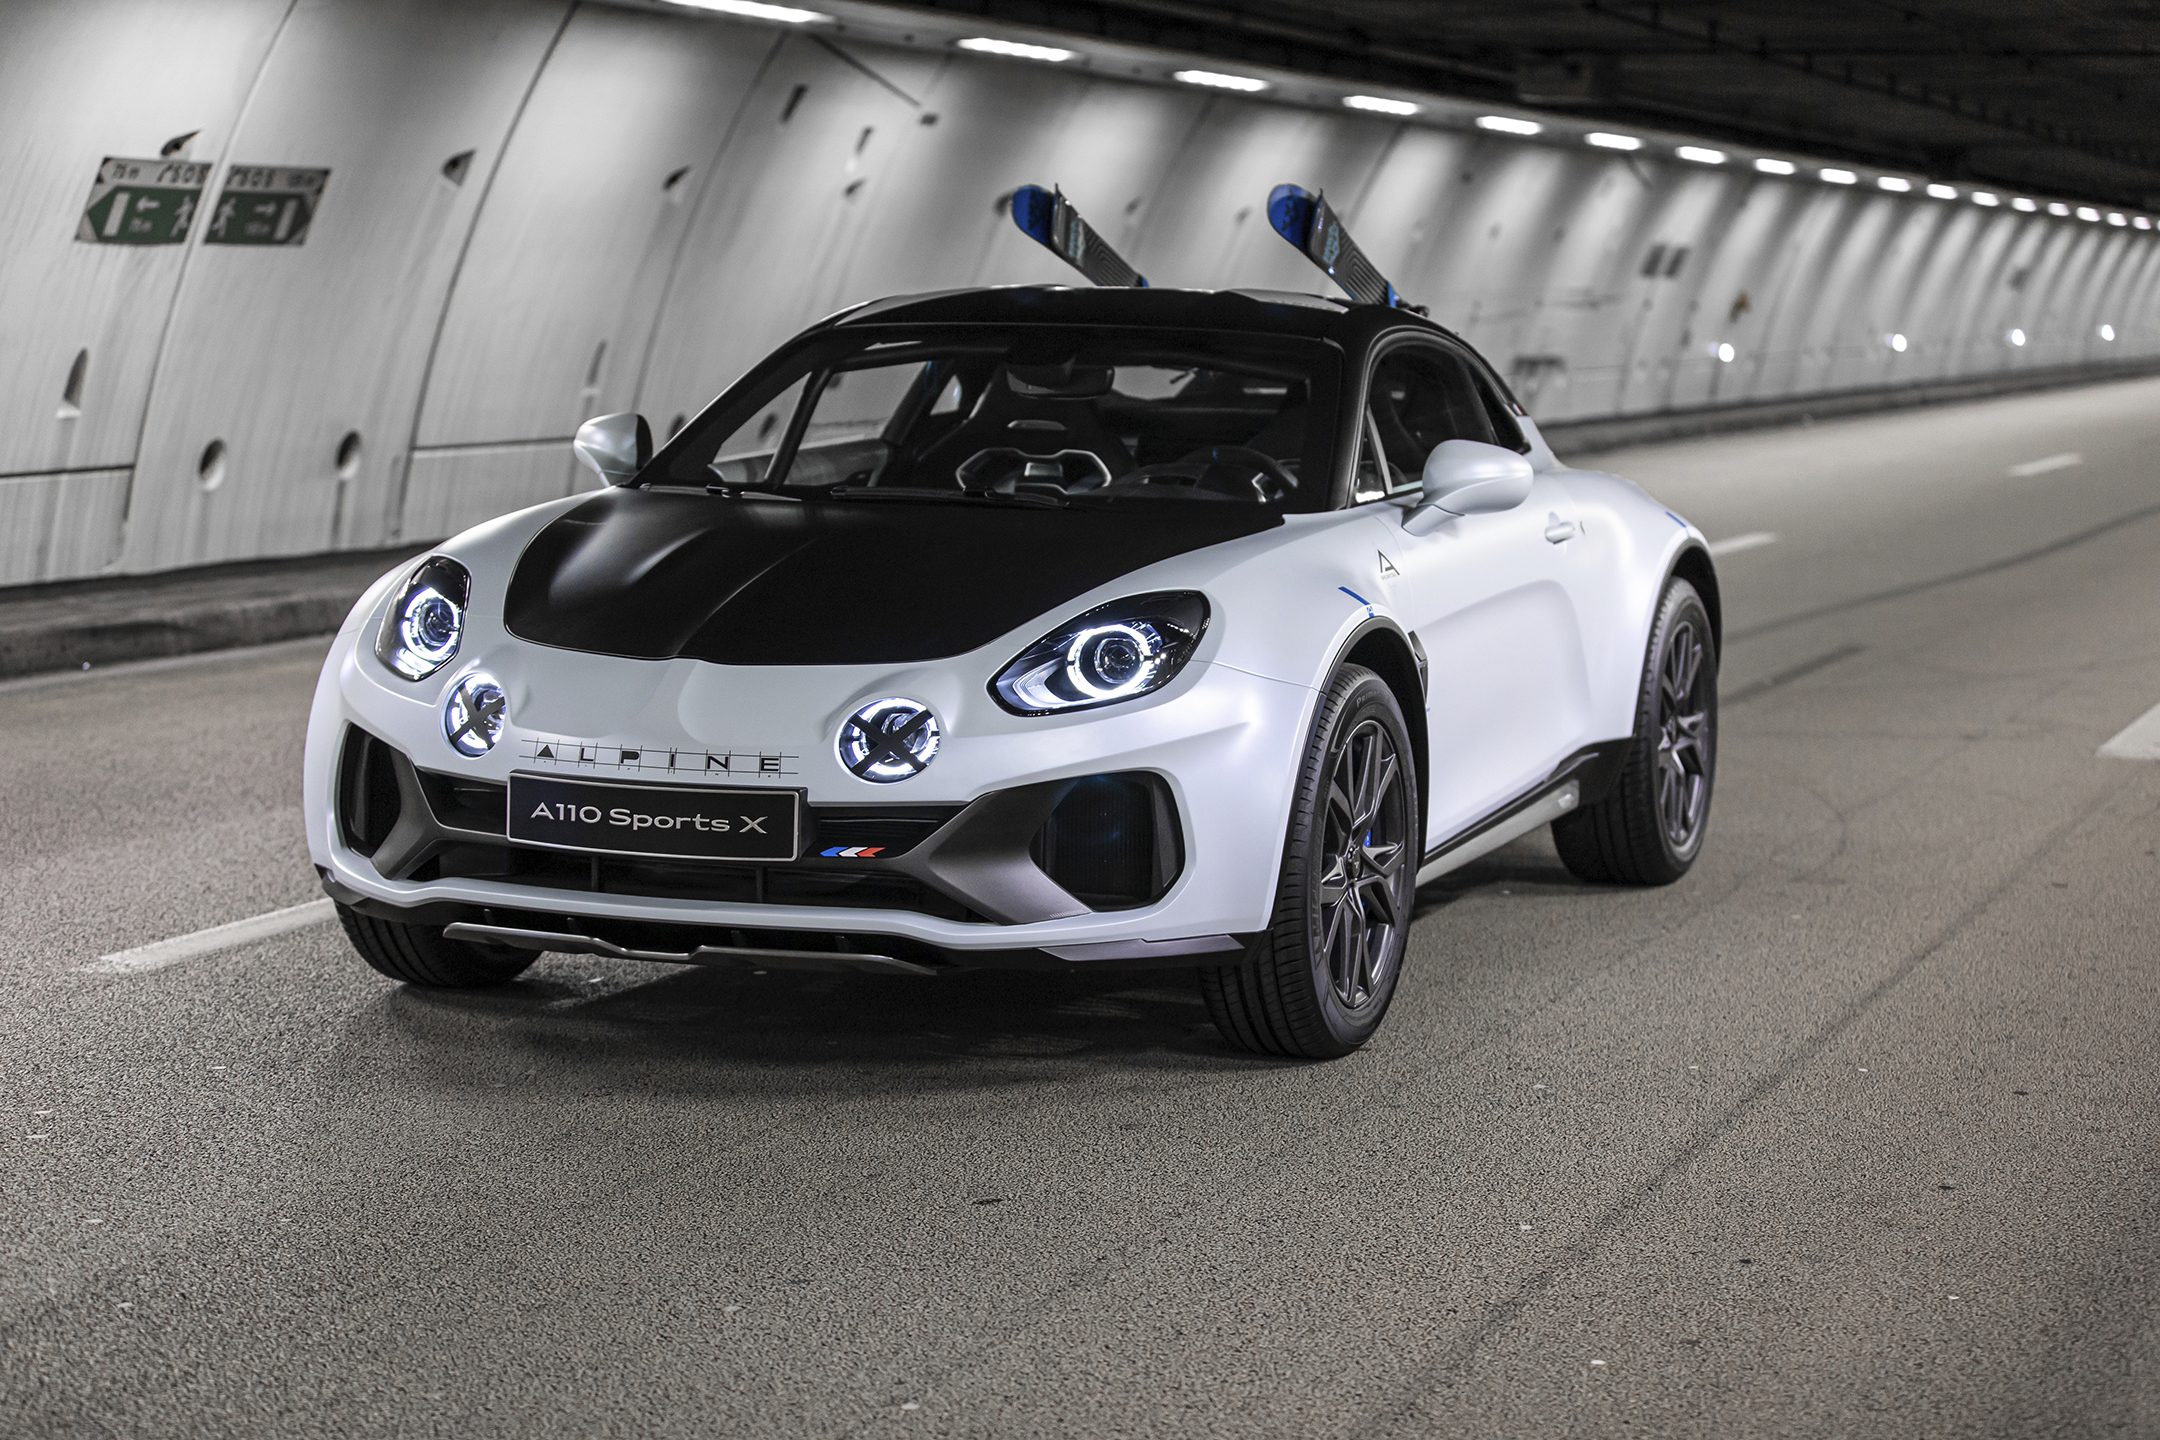 Alpine A110 SportsX - 2020 - front side-face / profil avant - pause photo